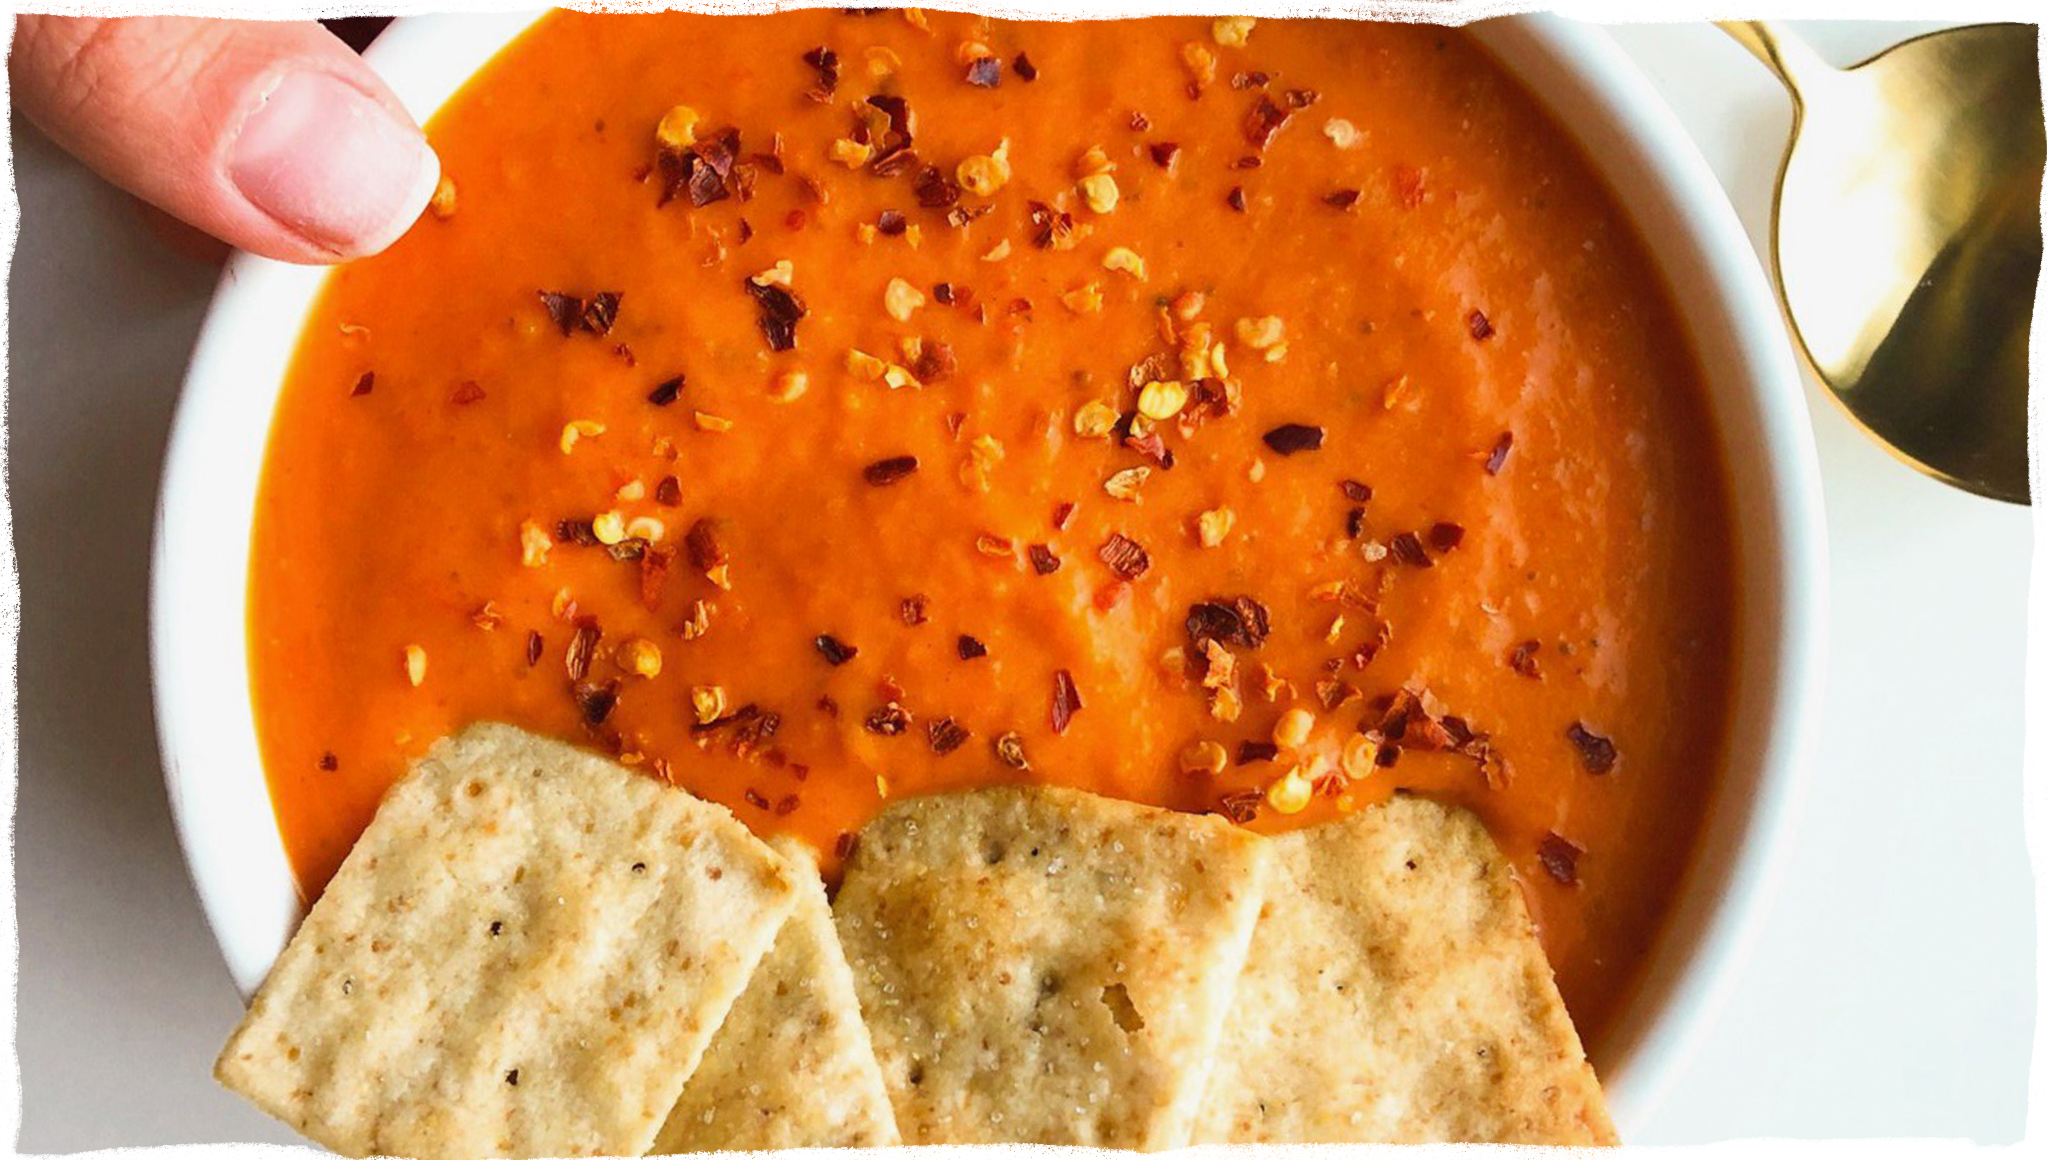 Spicy Red Pepper & Sweet Potato Soup - A fresh look at veggies - - Sari D., Eat Well With Sari